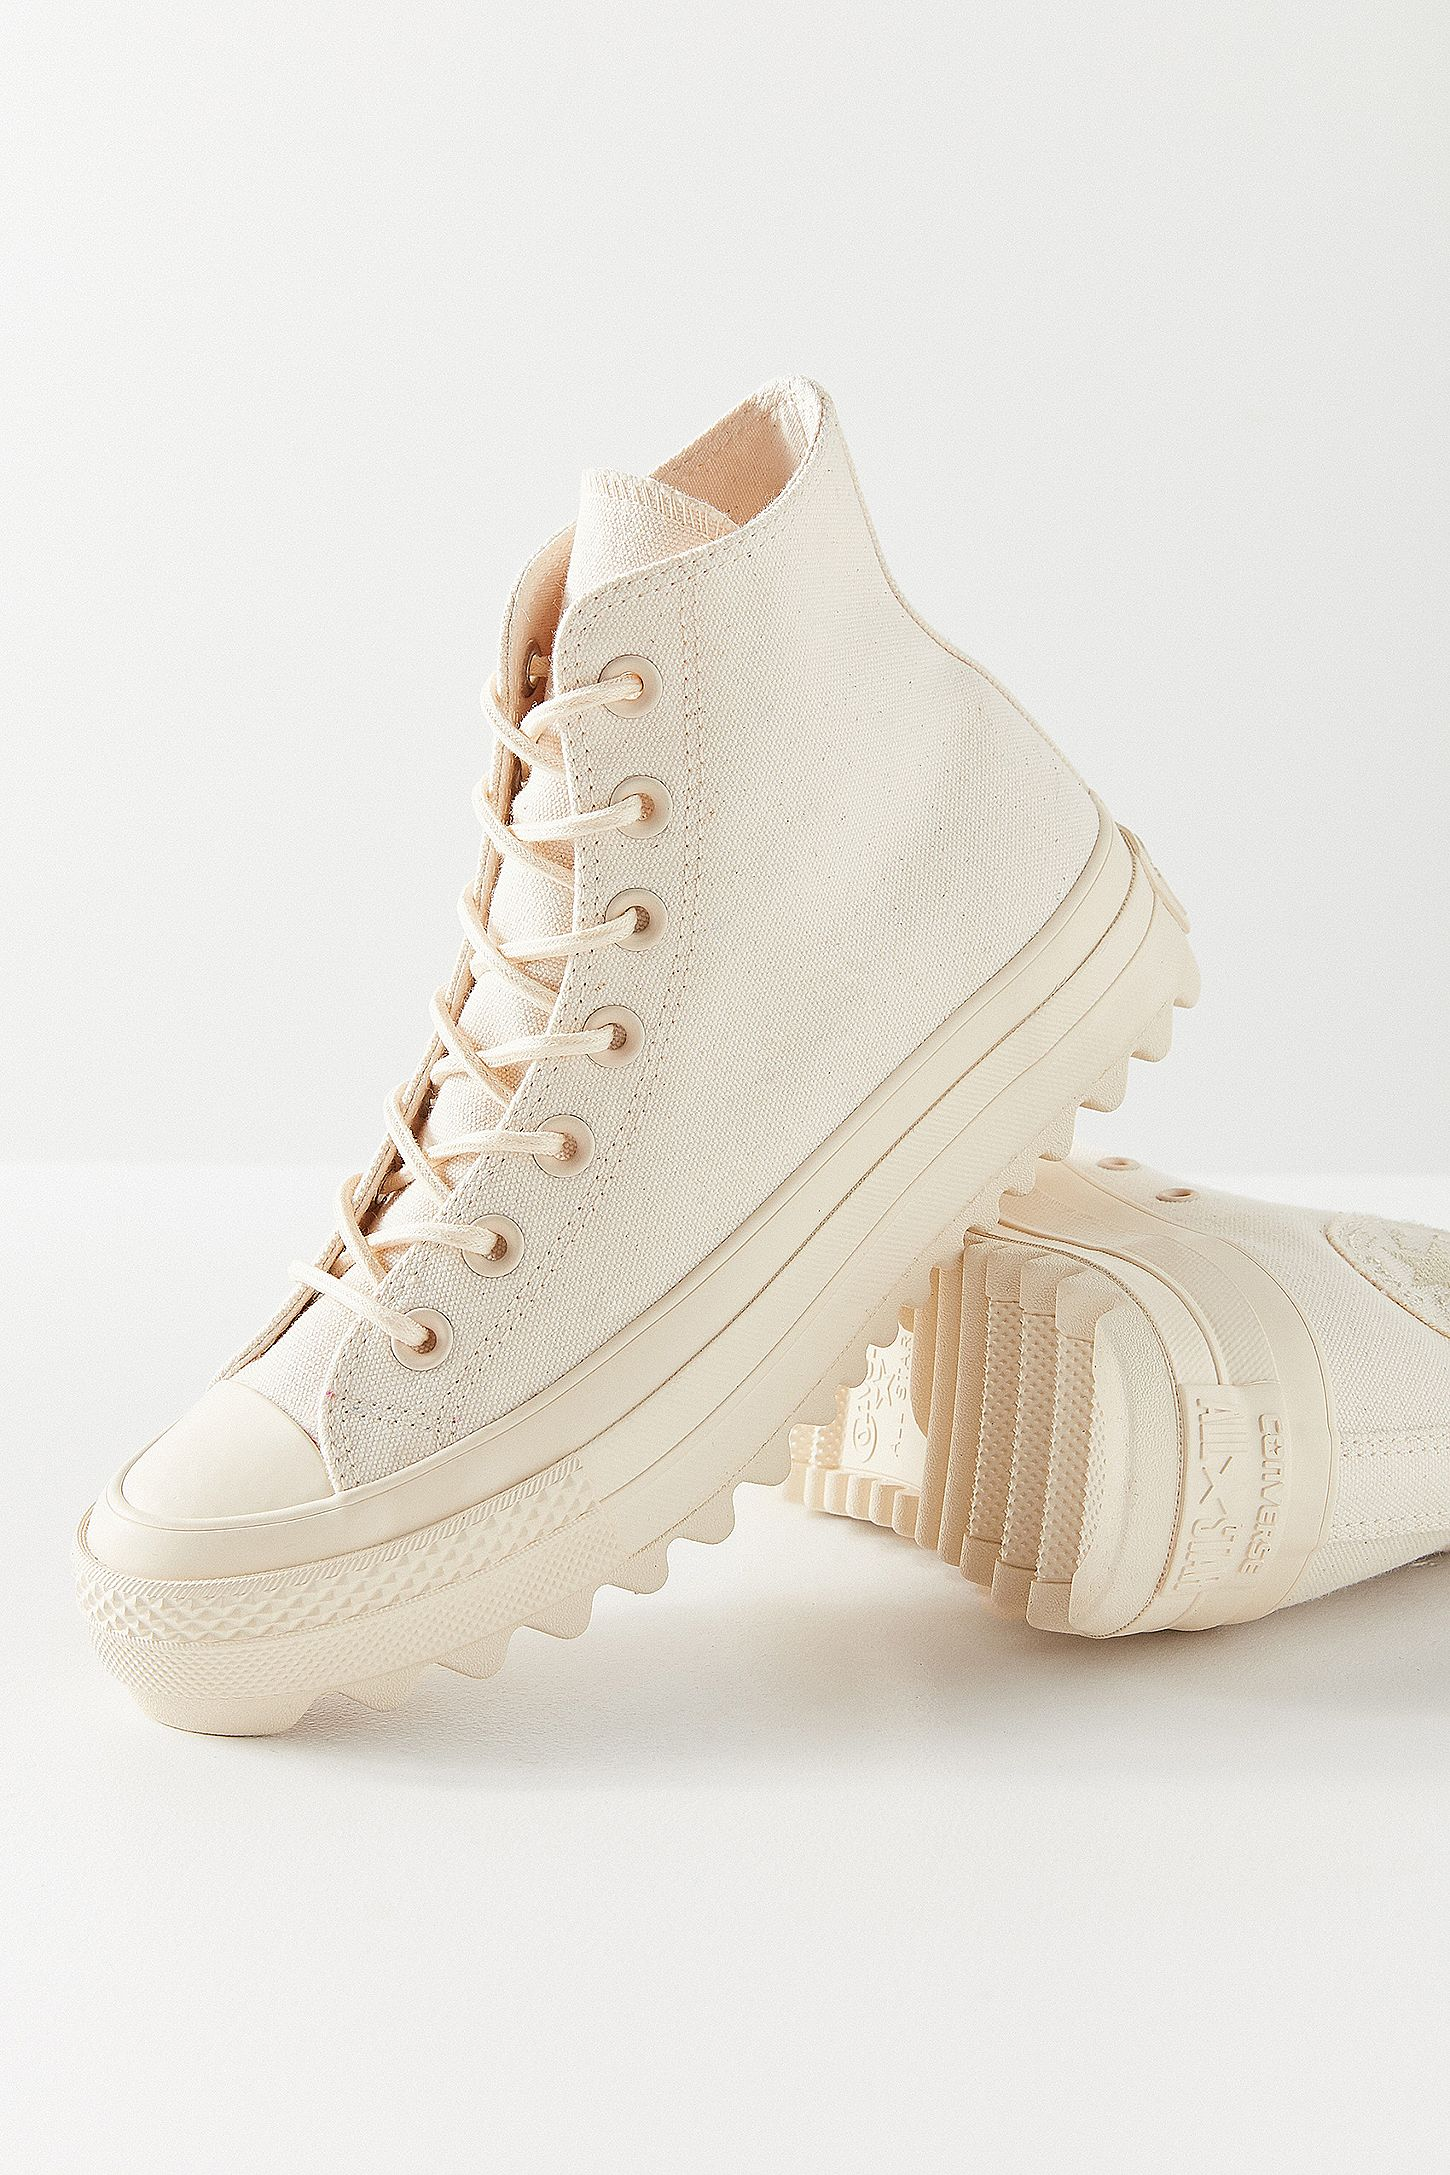 4e1141844413 Converse Chuck Taylor All Star Lift Ripple Ivory High Top Trainers. Click  on image to zoom. Hover to zoom. Double Tap to Zoom